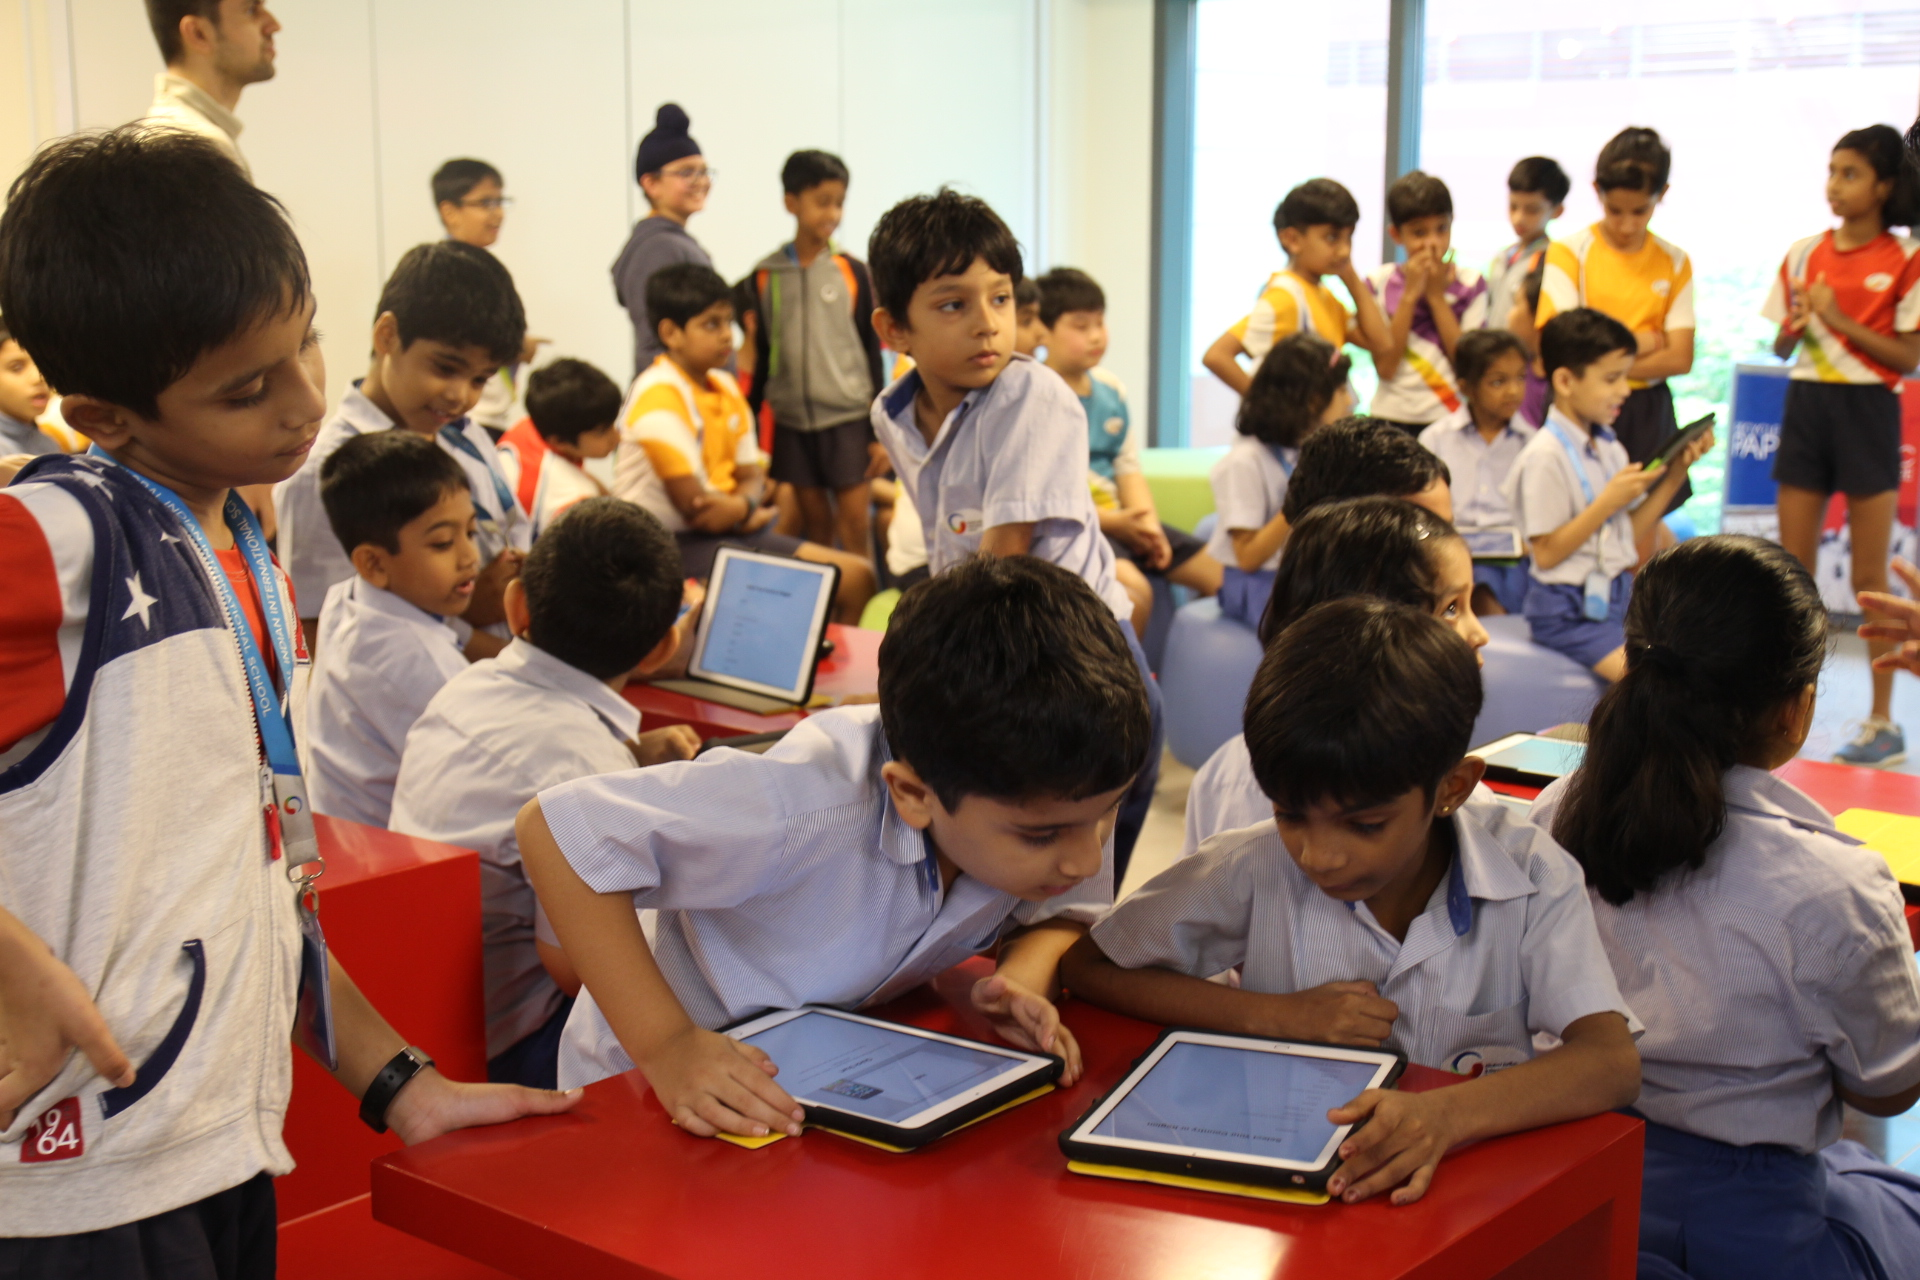 How schools can cater to 21st century learning